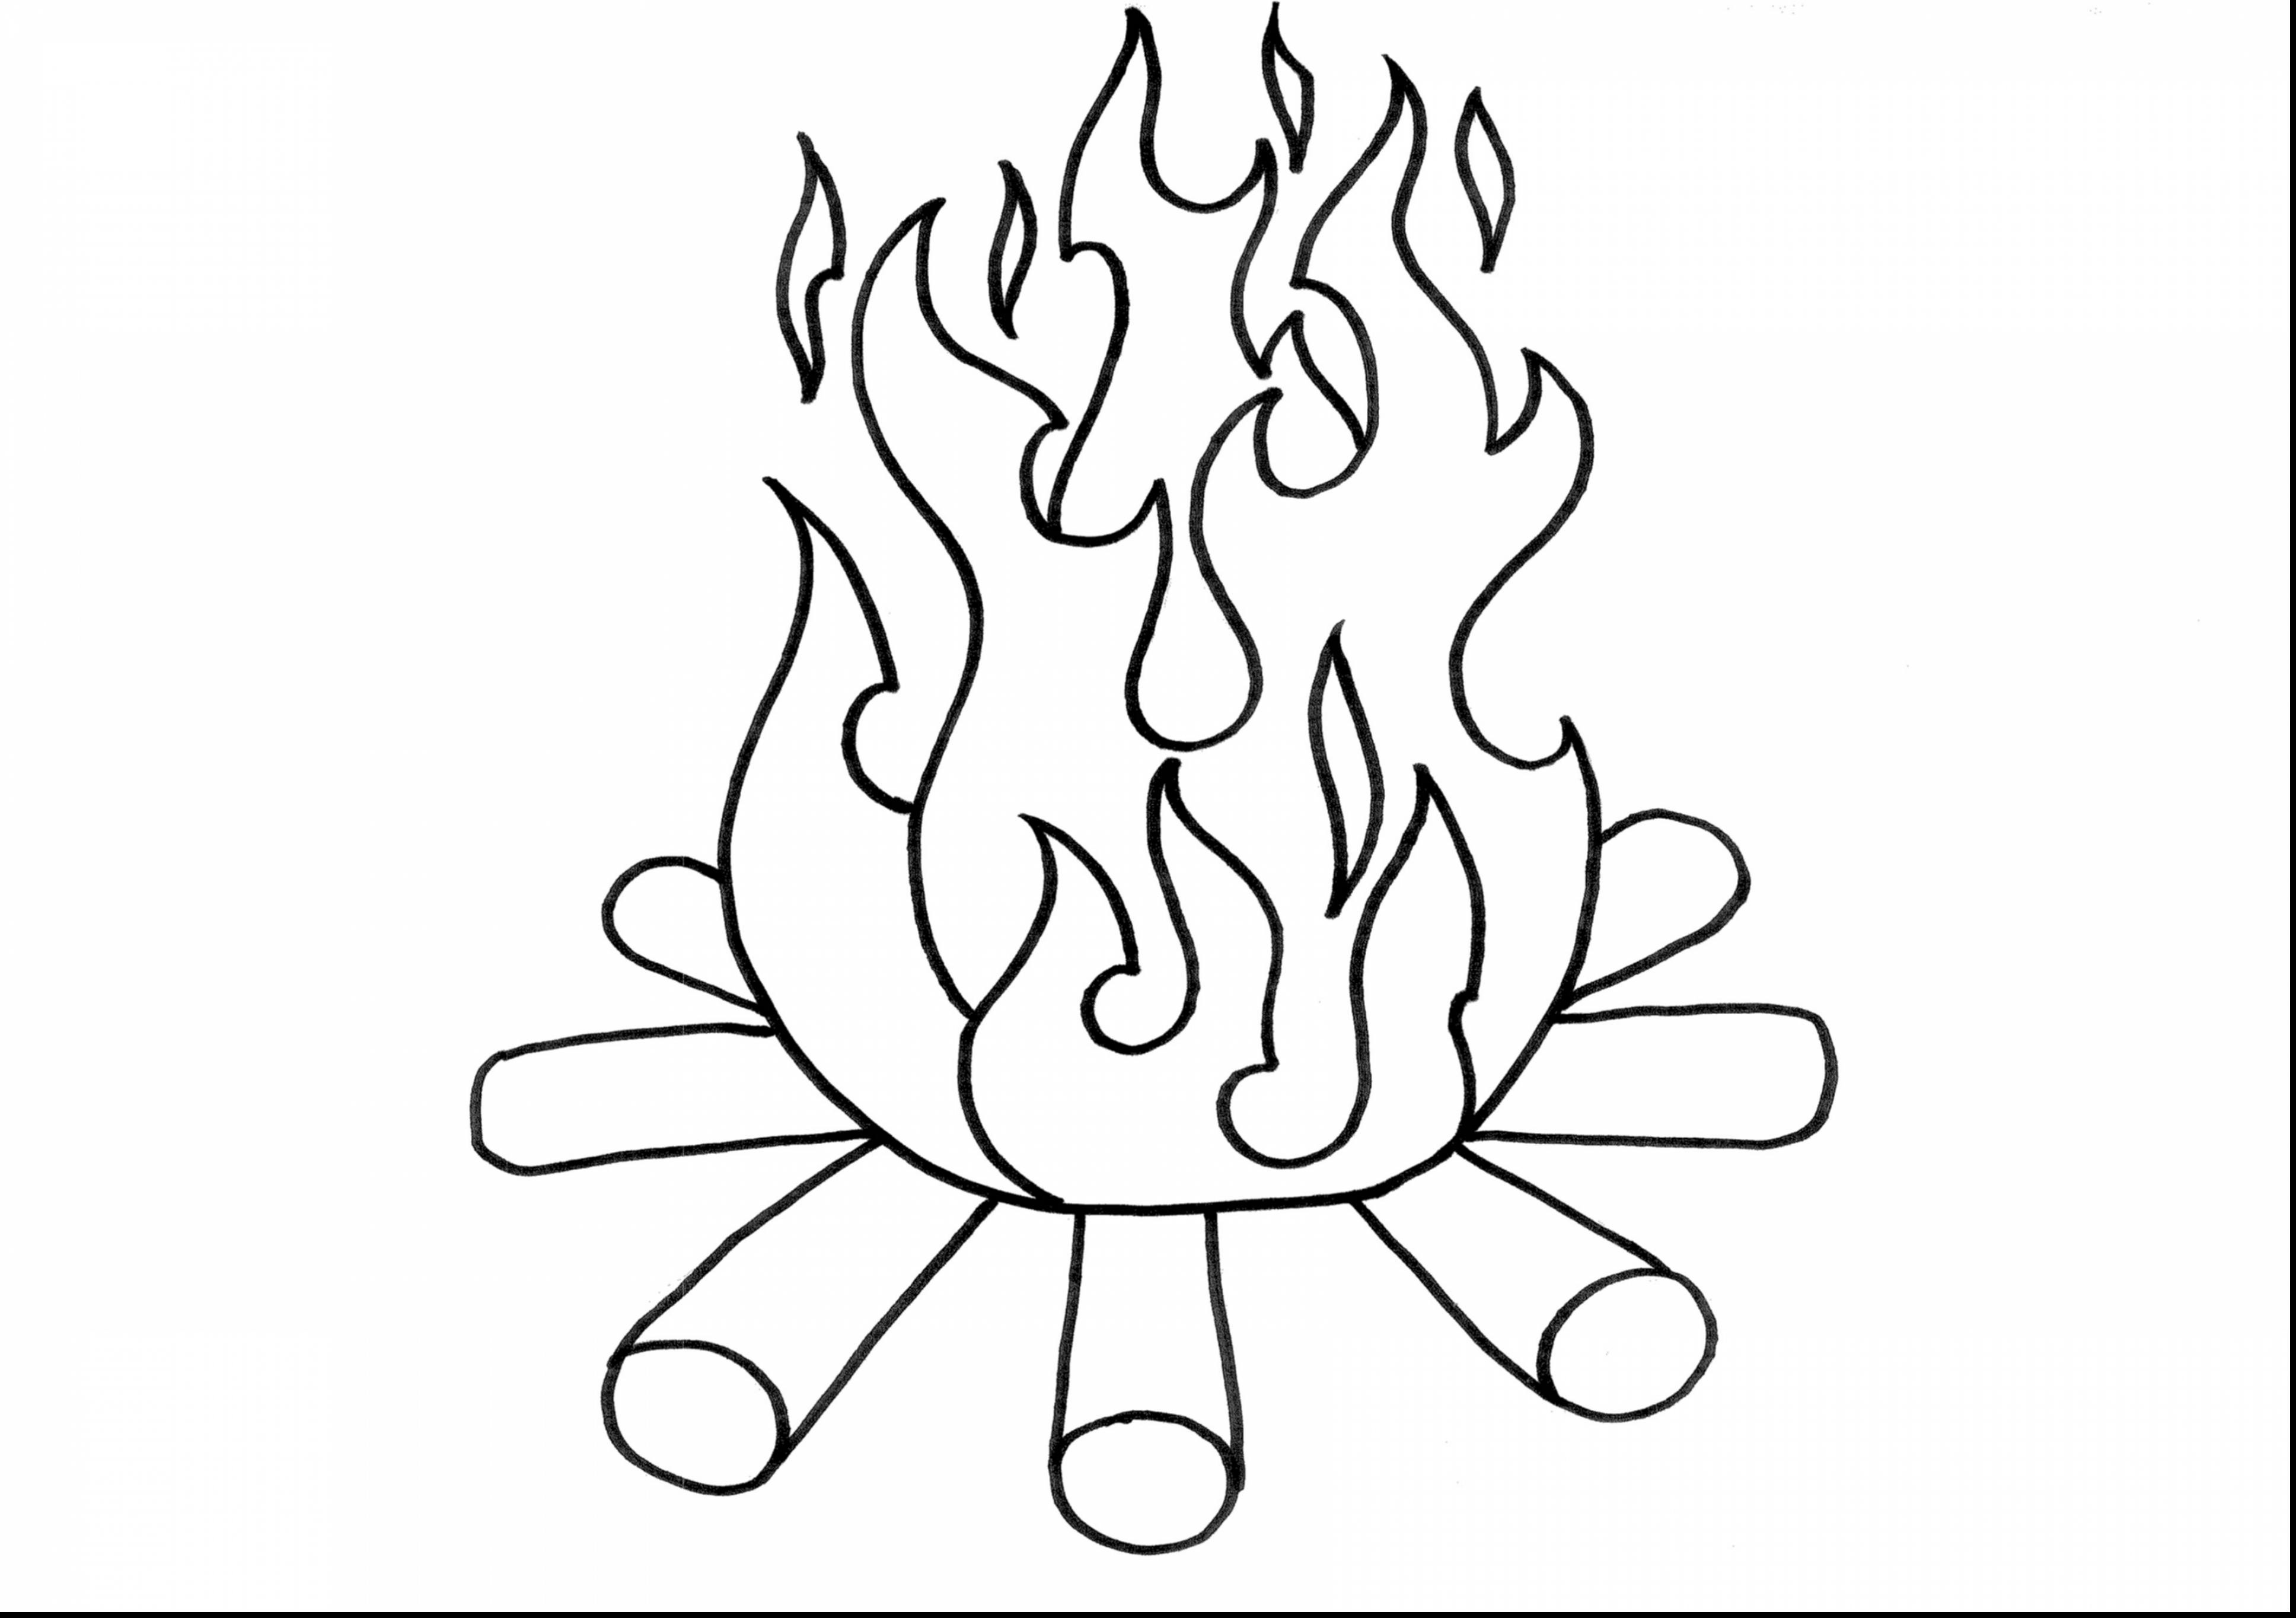 3872x2728 Catching Fire Coloring Pages Free Draw To Color